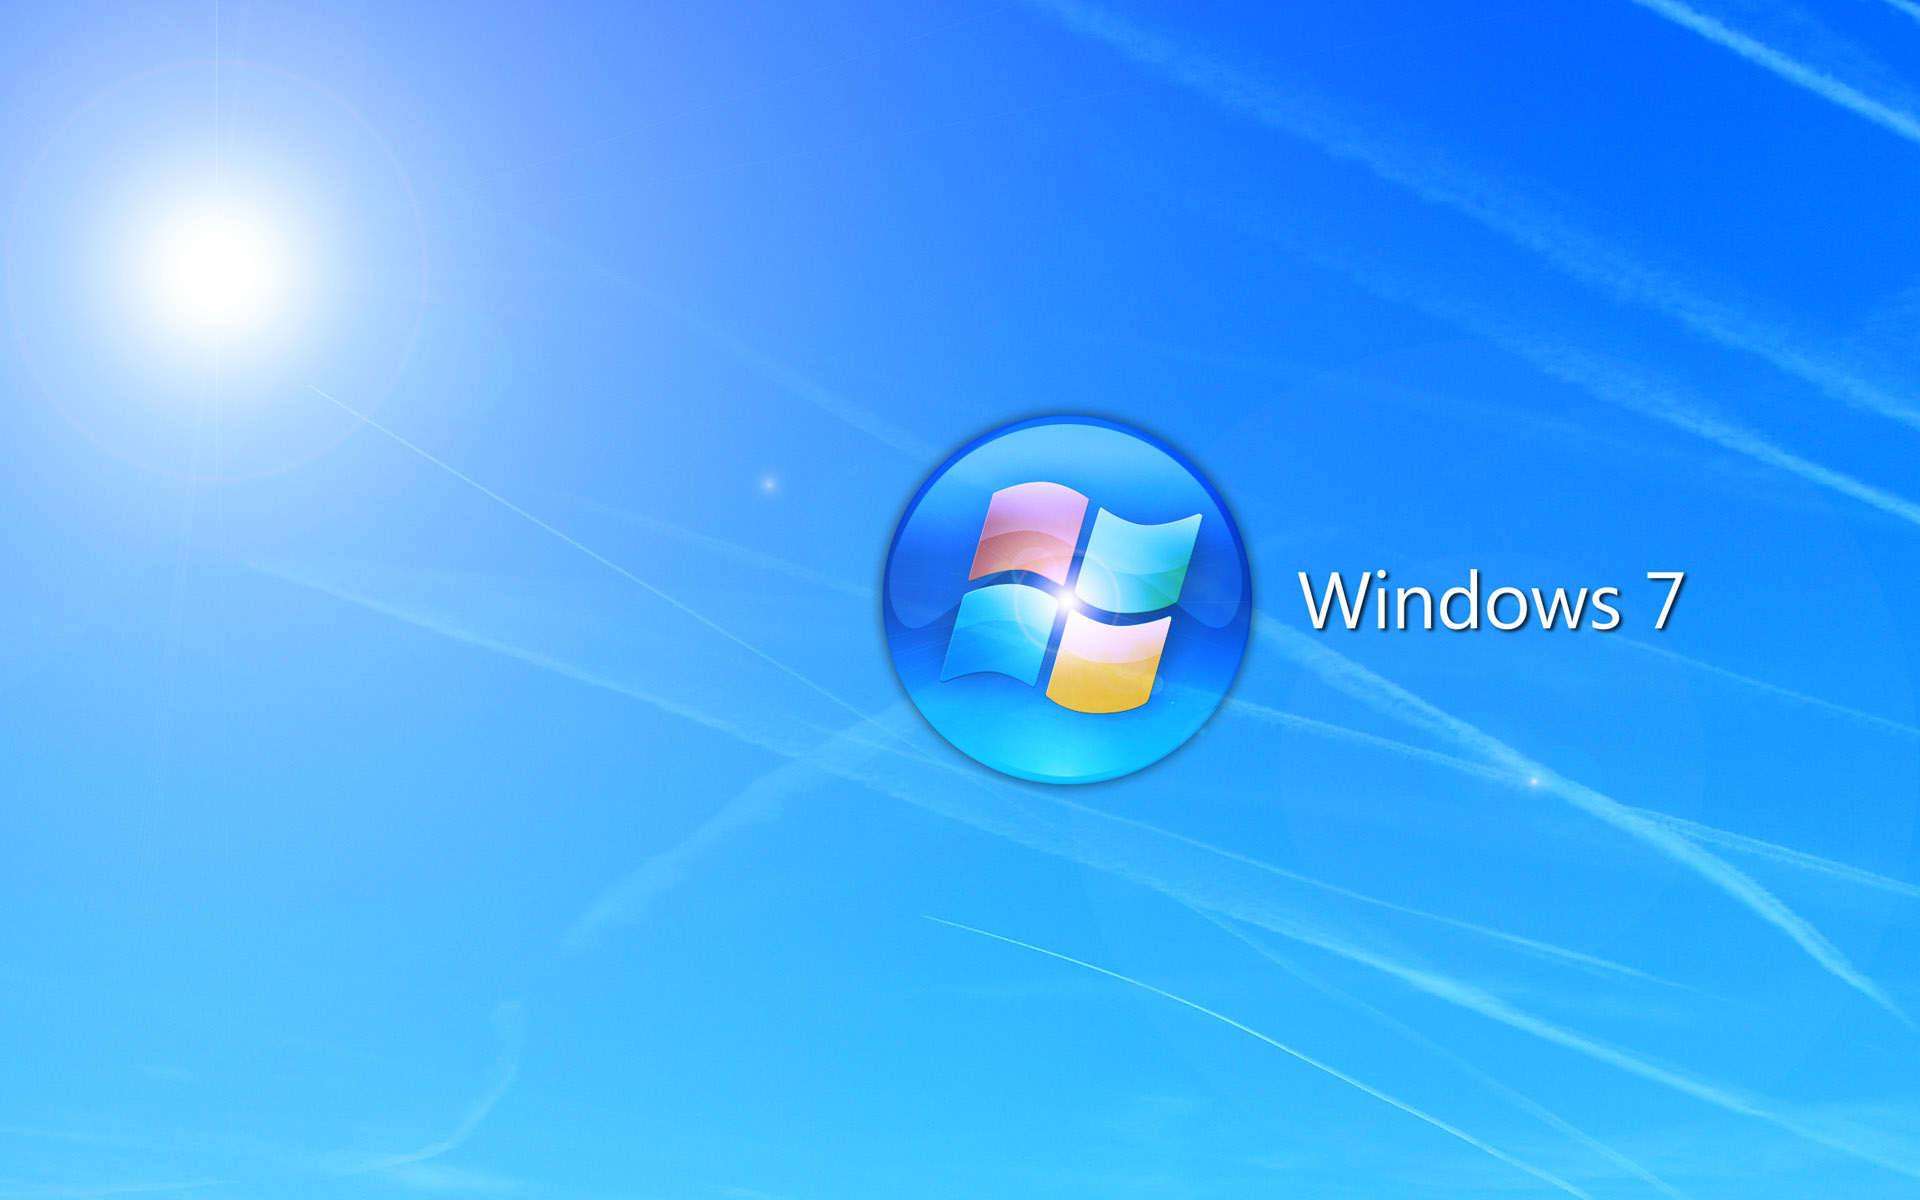 windows 7 professional wallpaper hd - wallpapersafari